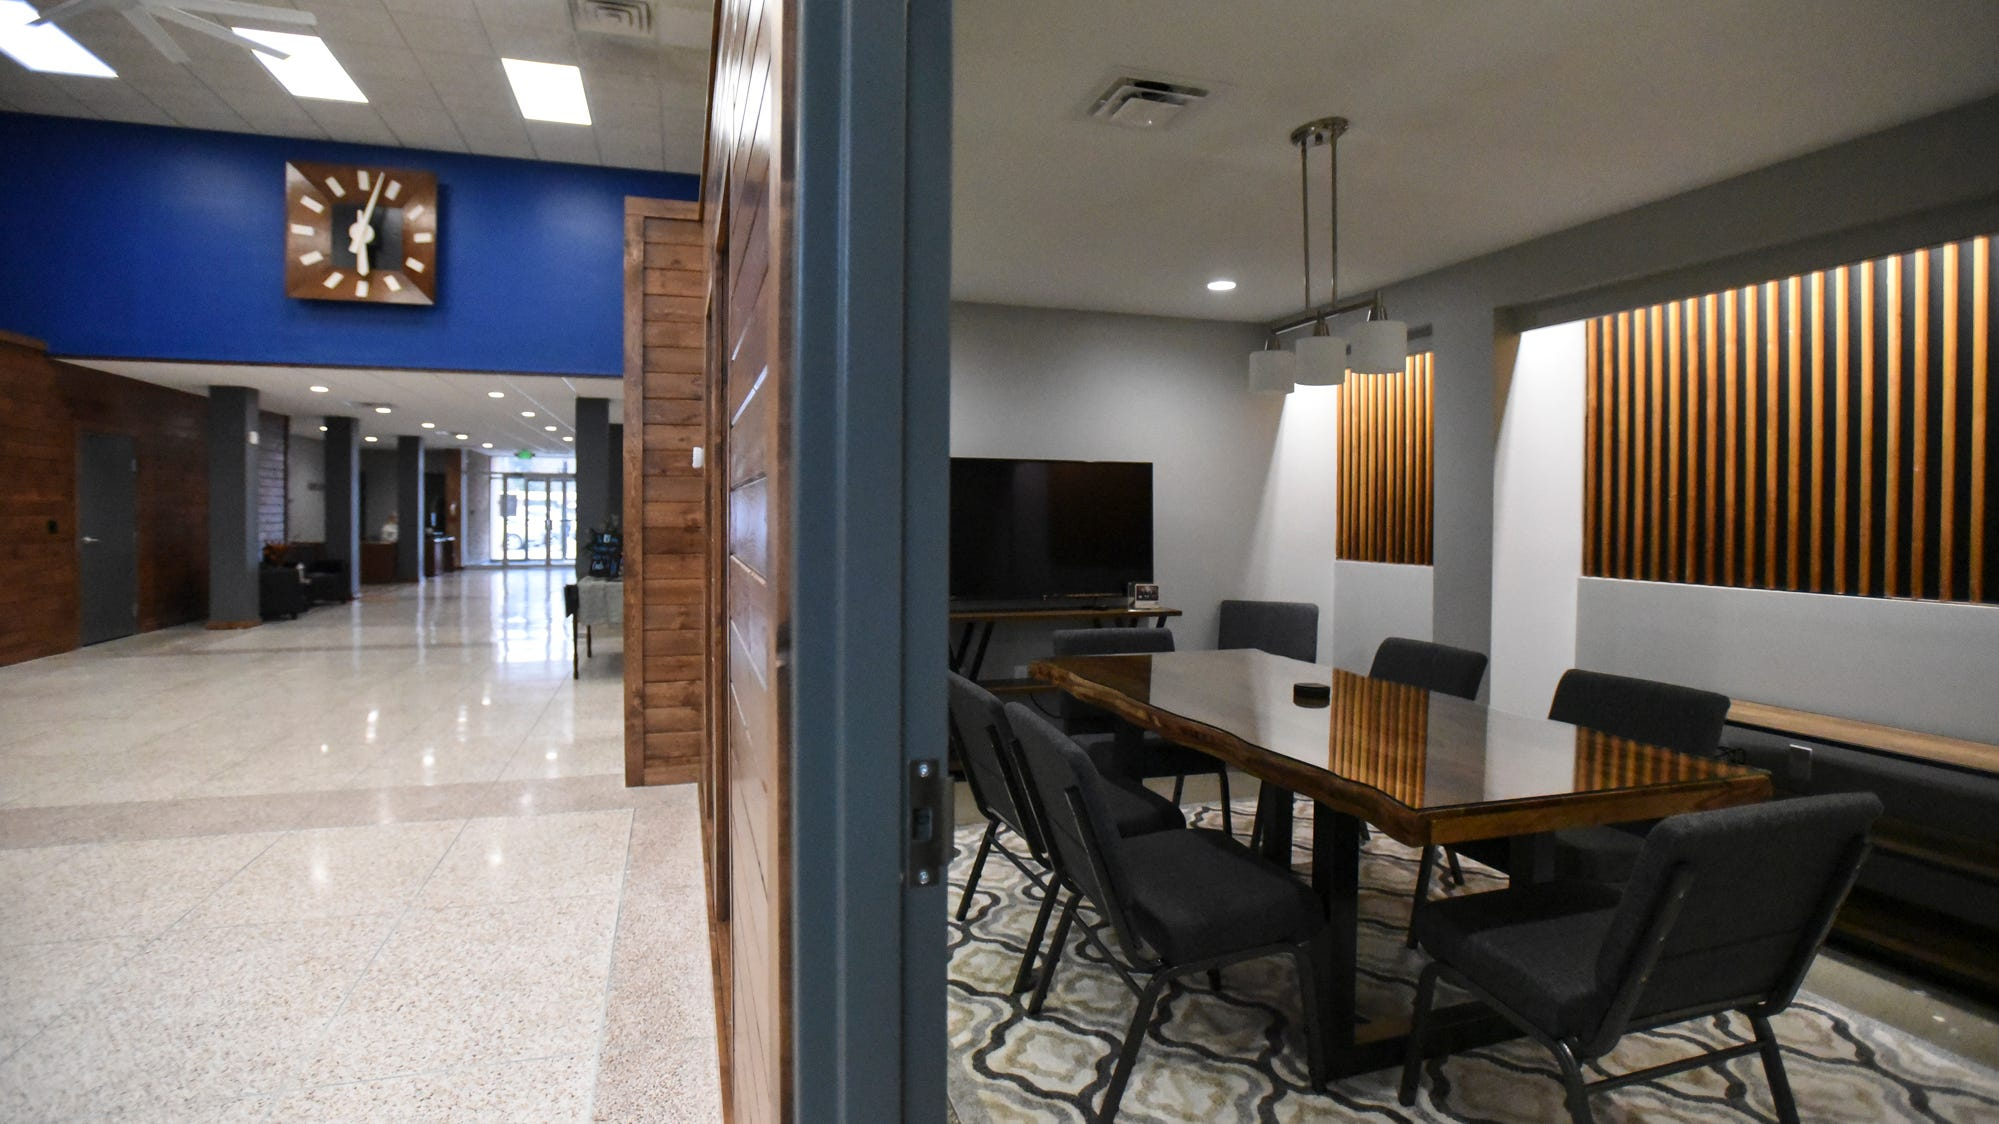 'Cold and sterile' bank building transformed into mid-century modern space in Charlotte